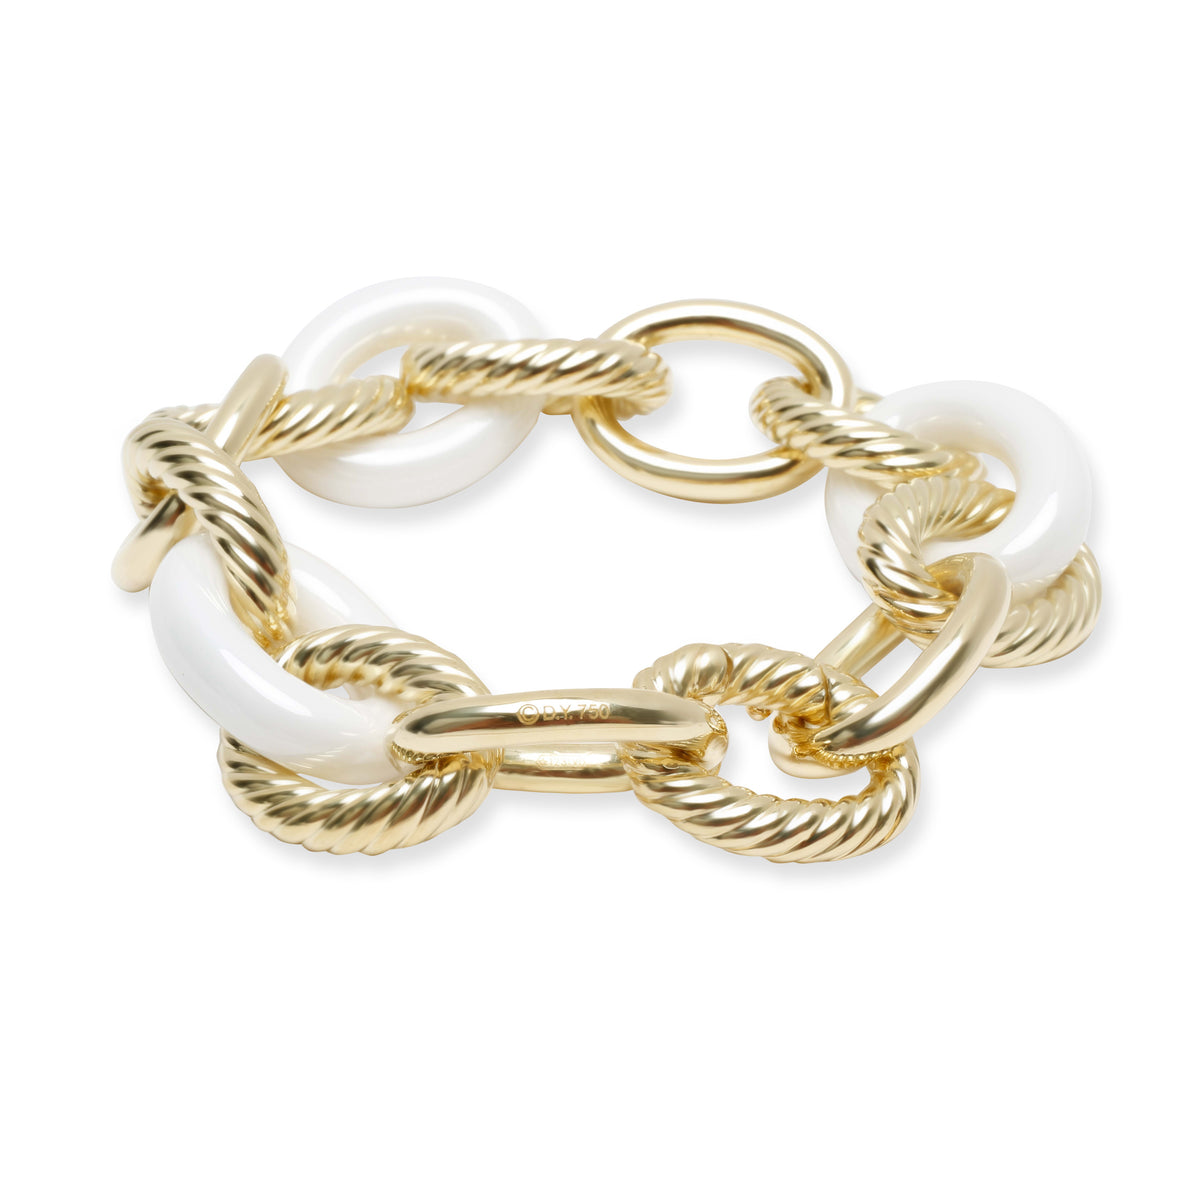 David Yurman Ceramic Extra Large Oval Link Chain Bracelet in 18K Yellow Gold